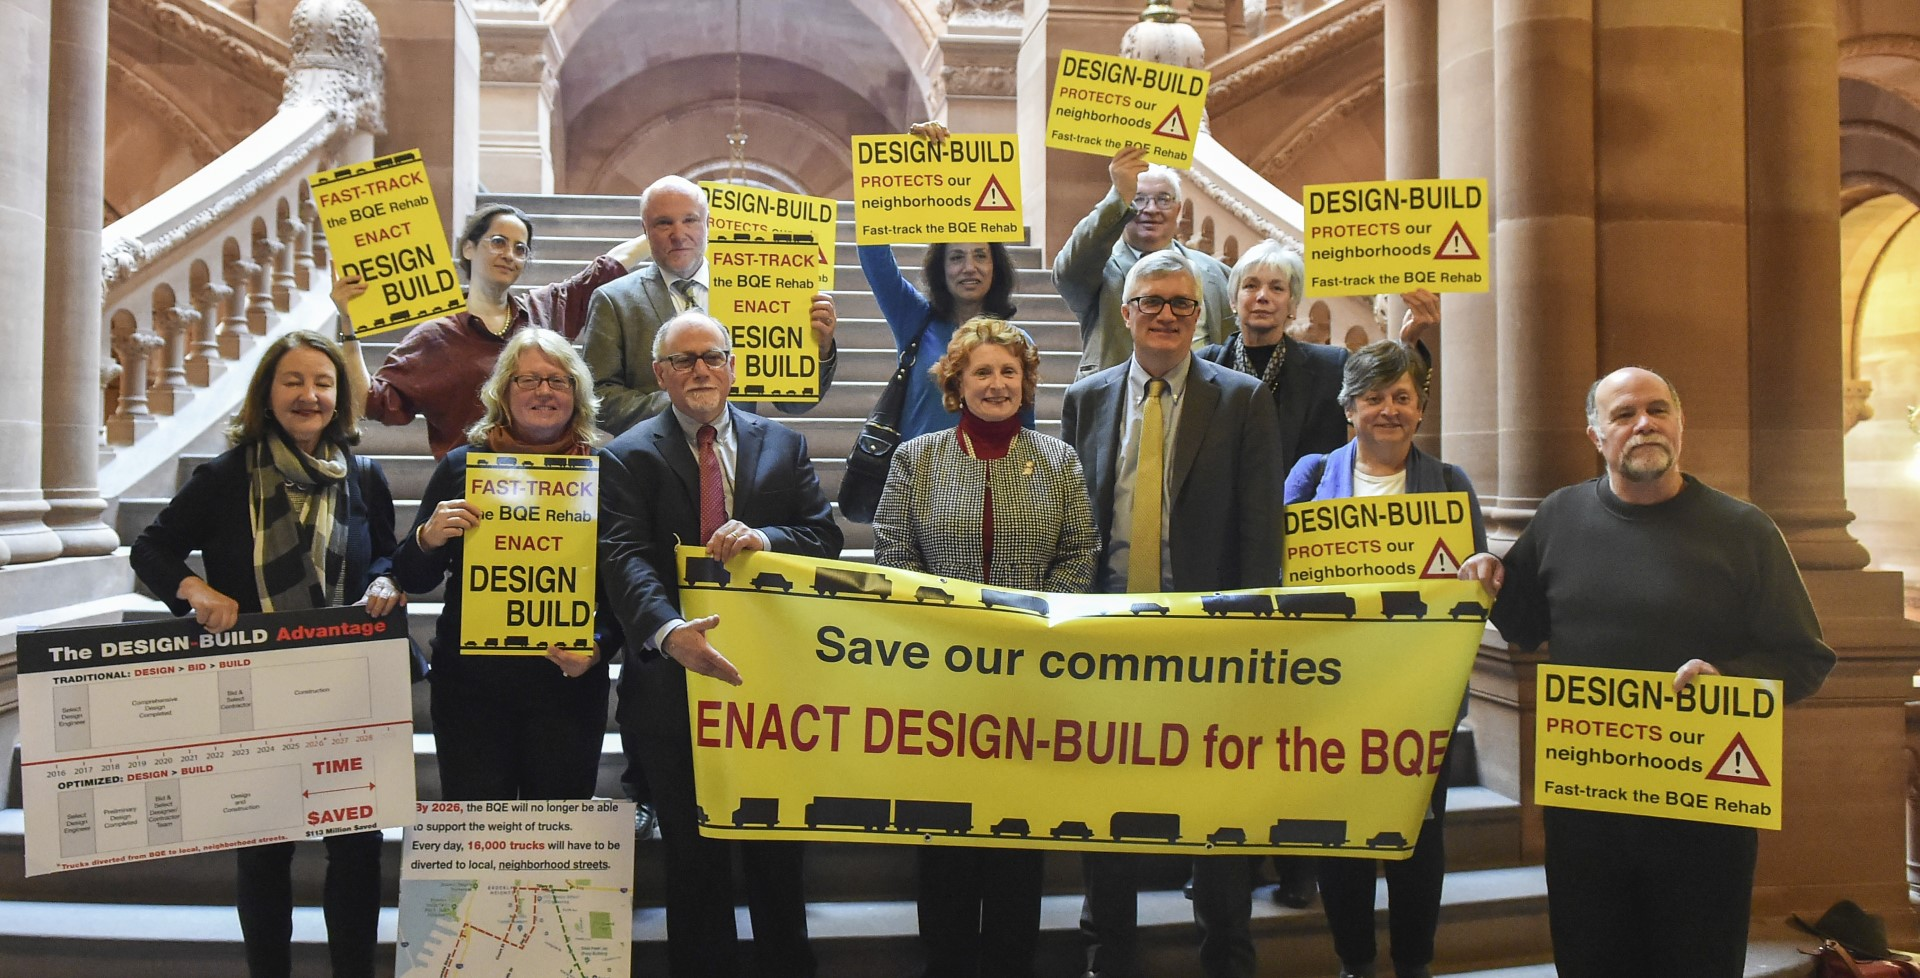 Assemblymember Simon and the Brooklyn Heights Association call for design-build authorization for the BQE repairs.<br />&nbsp;